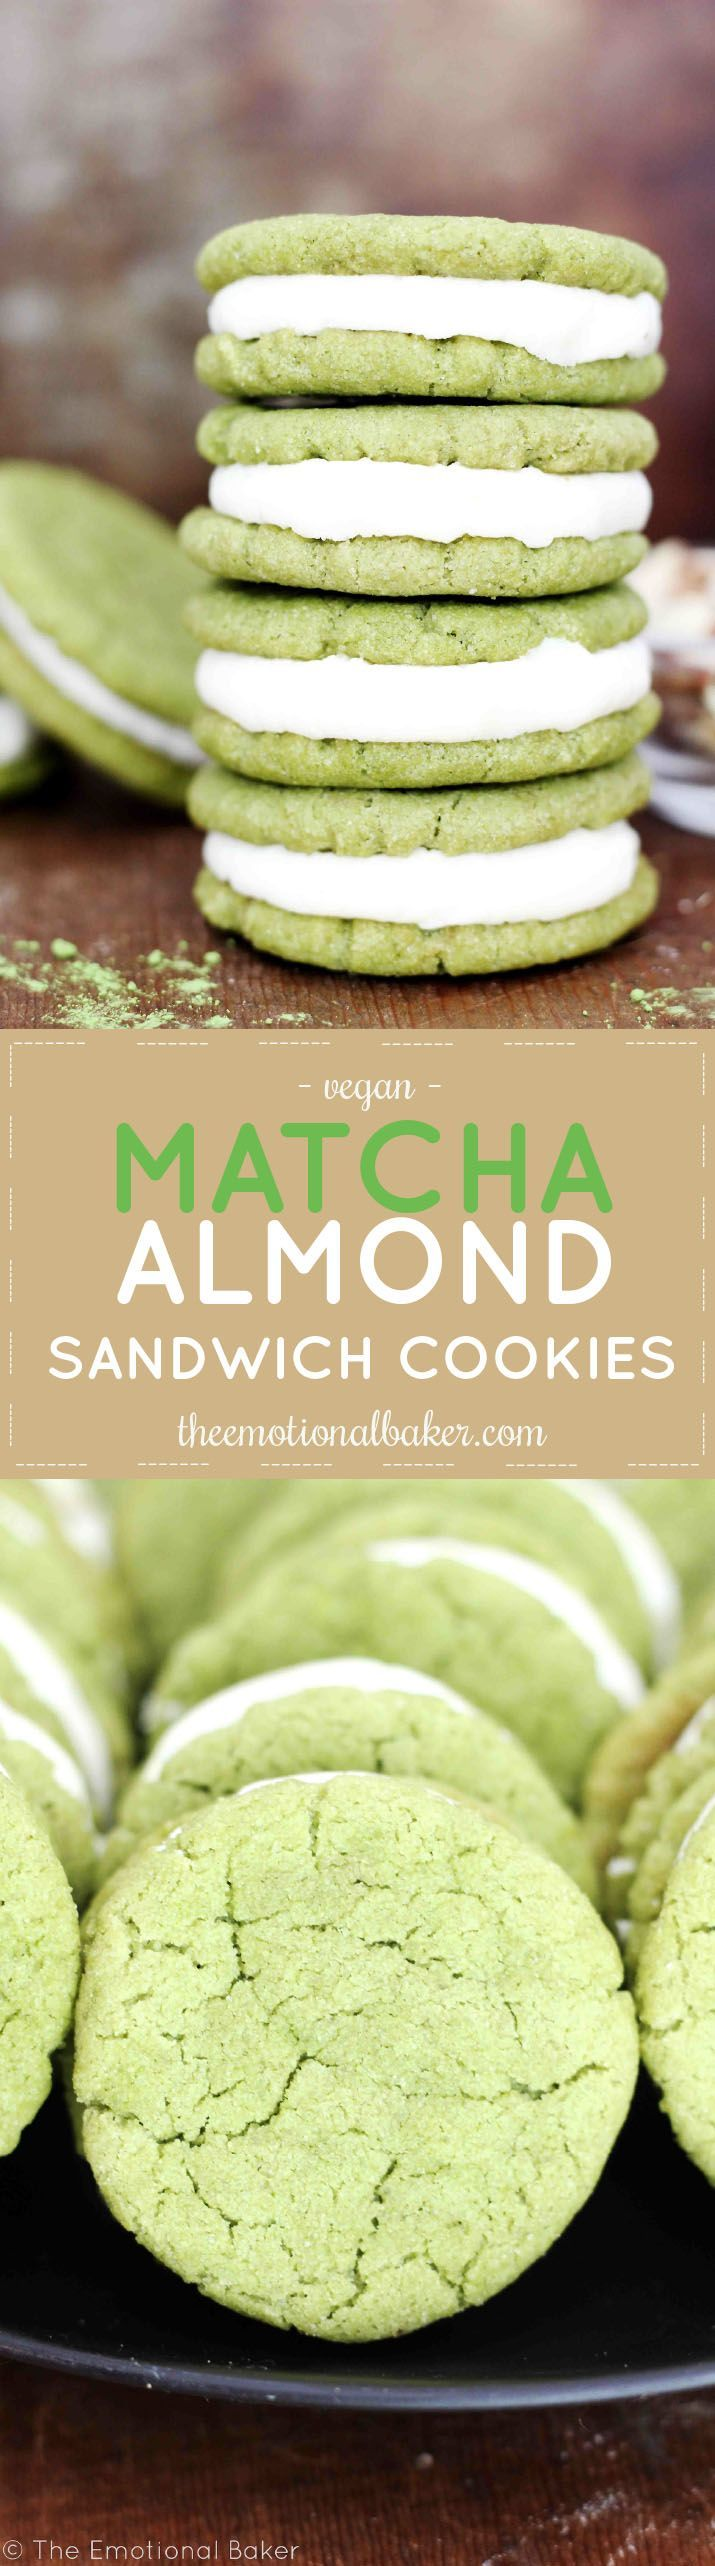 Green tea cookies flavored with almond and paired with a creamy frosting.   Find more stuff: www.victoriasbestmatchatea.com